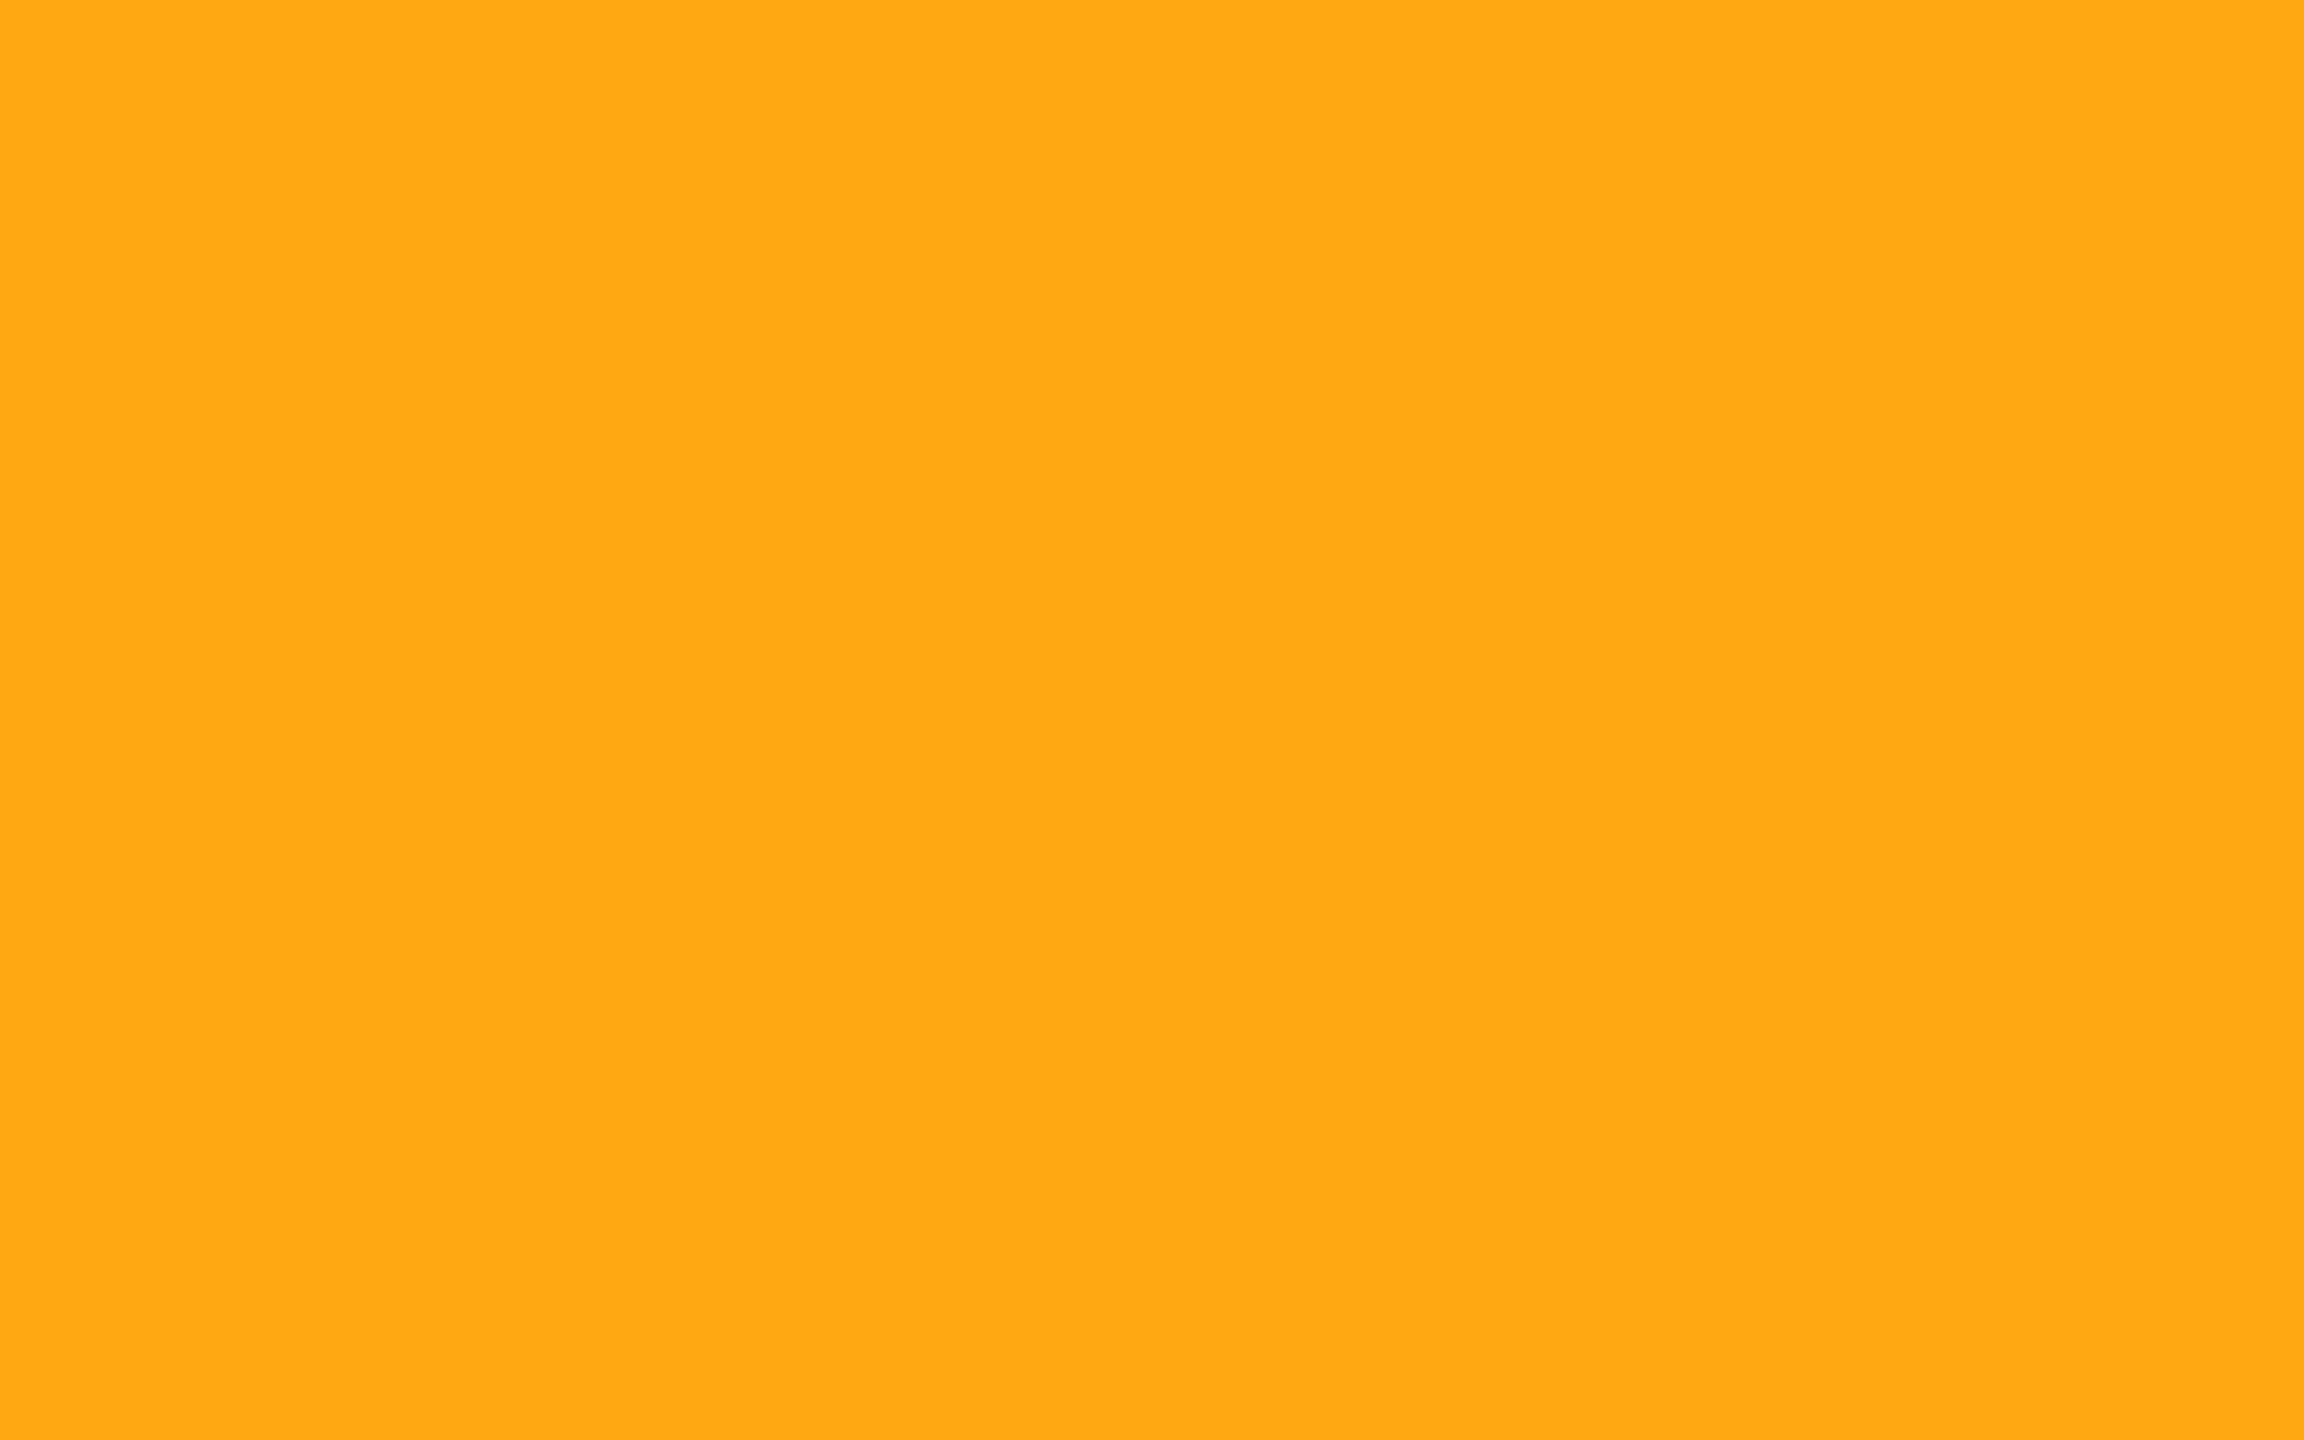 2304x1440 Dark Tangerine Solid Color Background